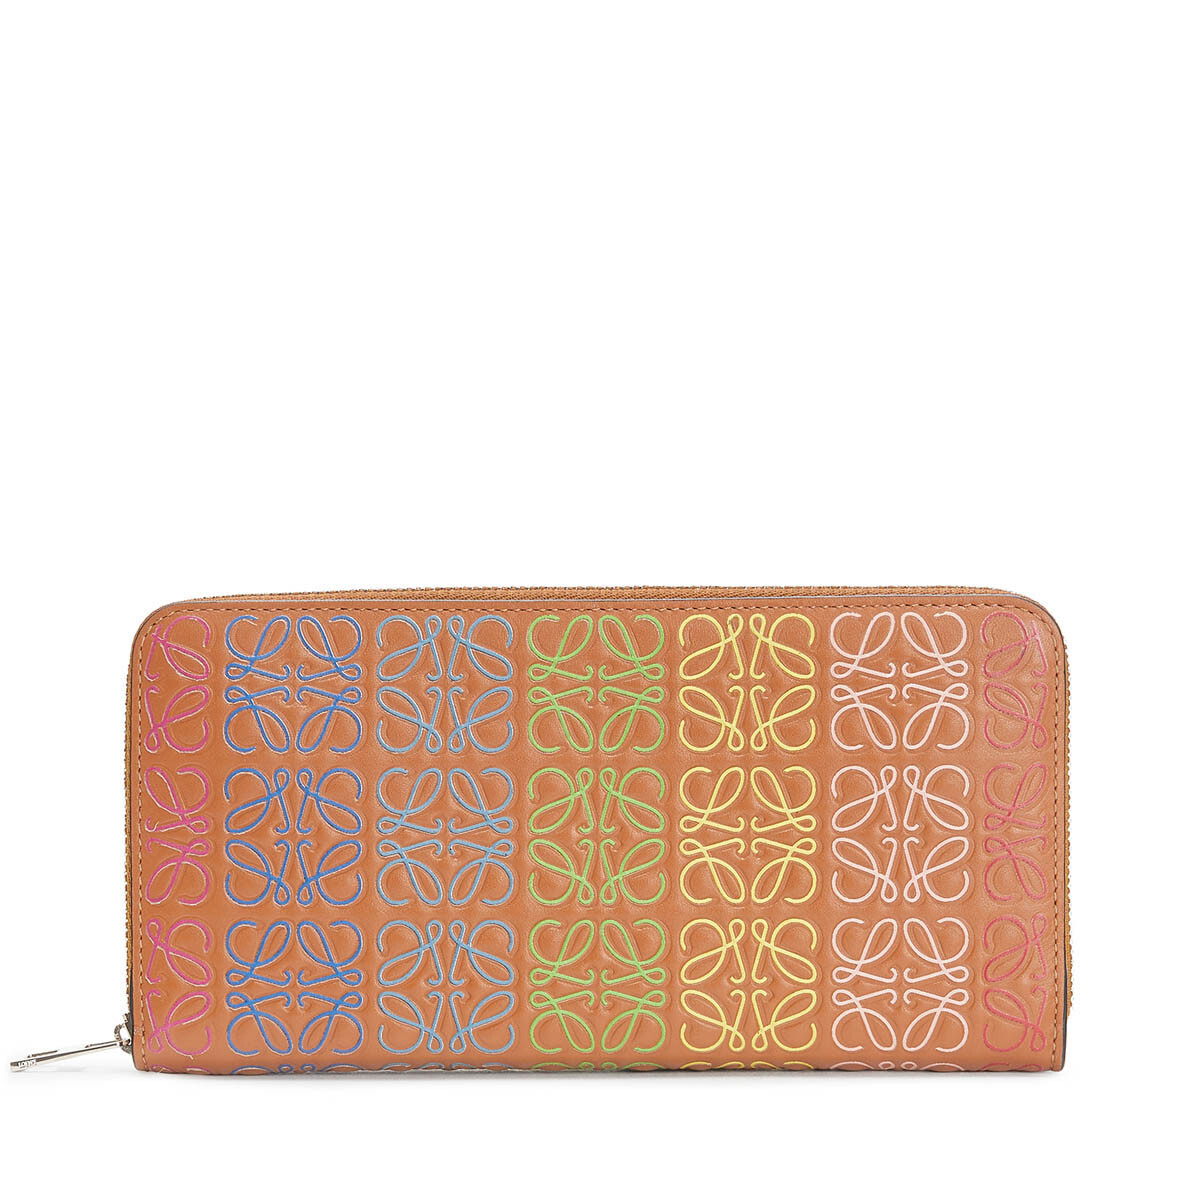 LOEWE Repeat Zip Around Wallet Tan/Multicolor front